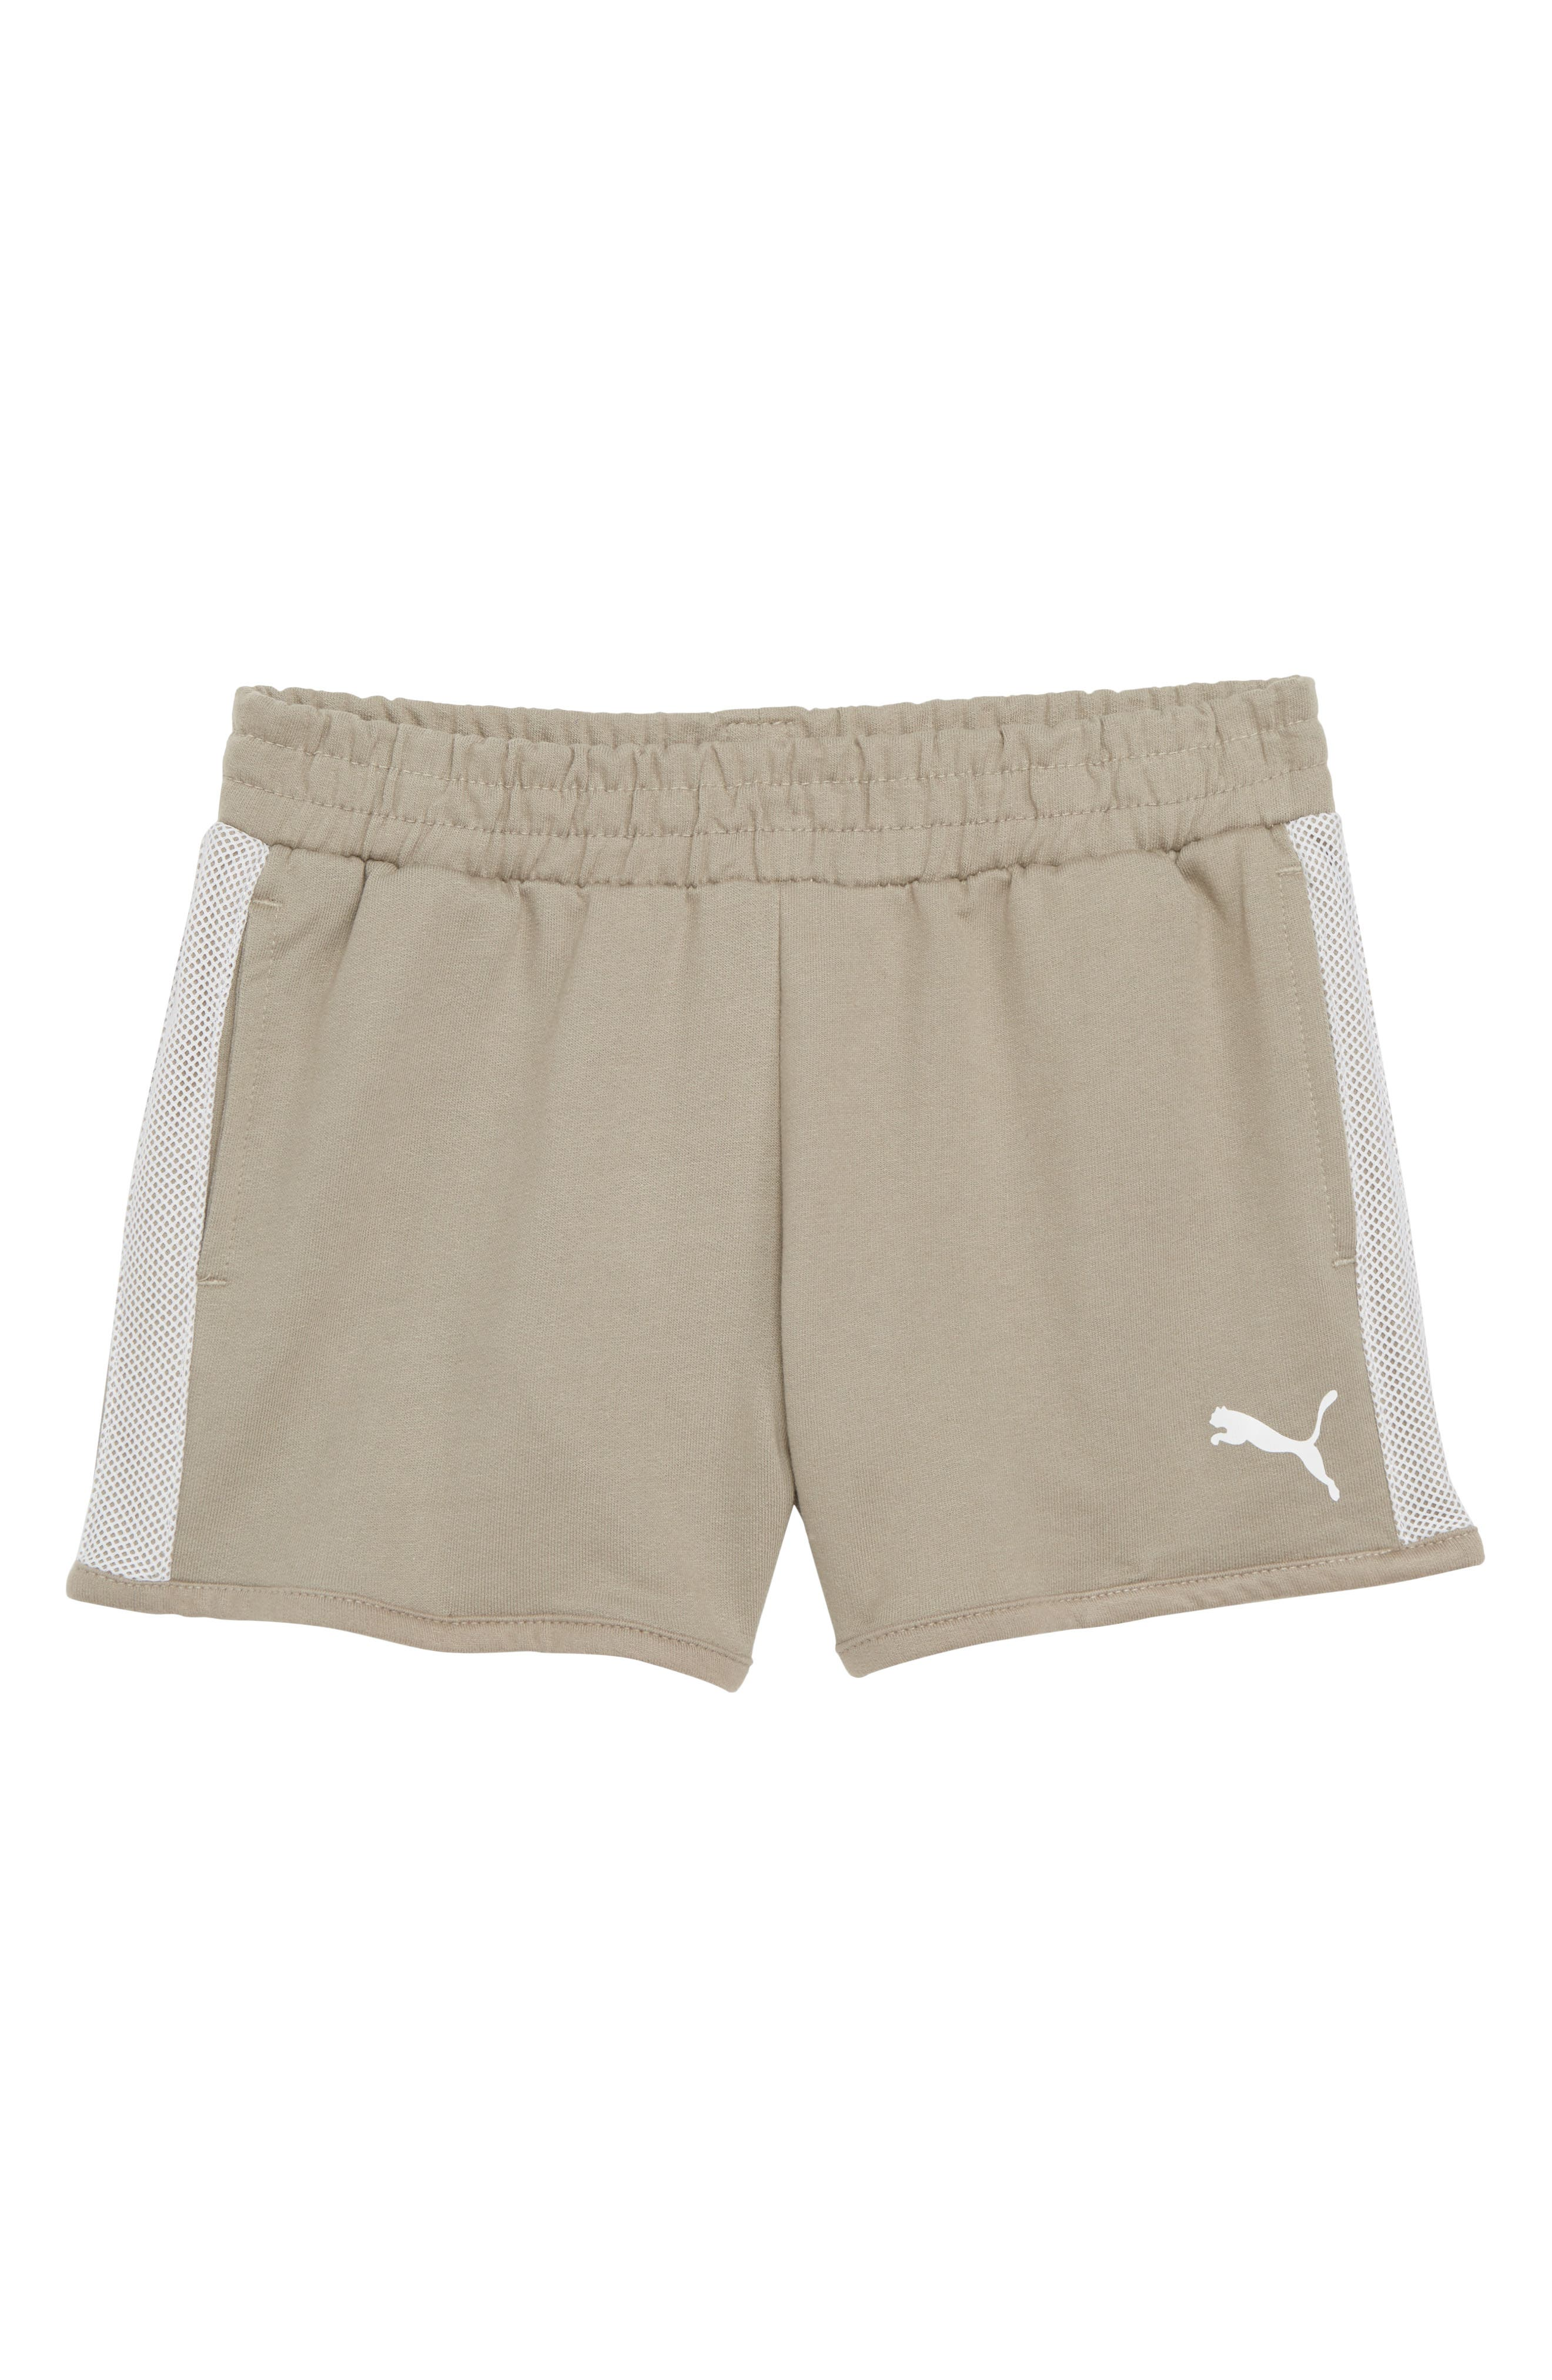 French Terry Shorts,                             Main thumbnail 1, color,                             255